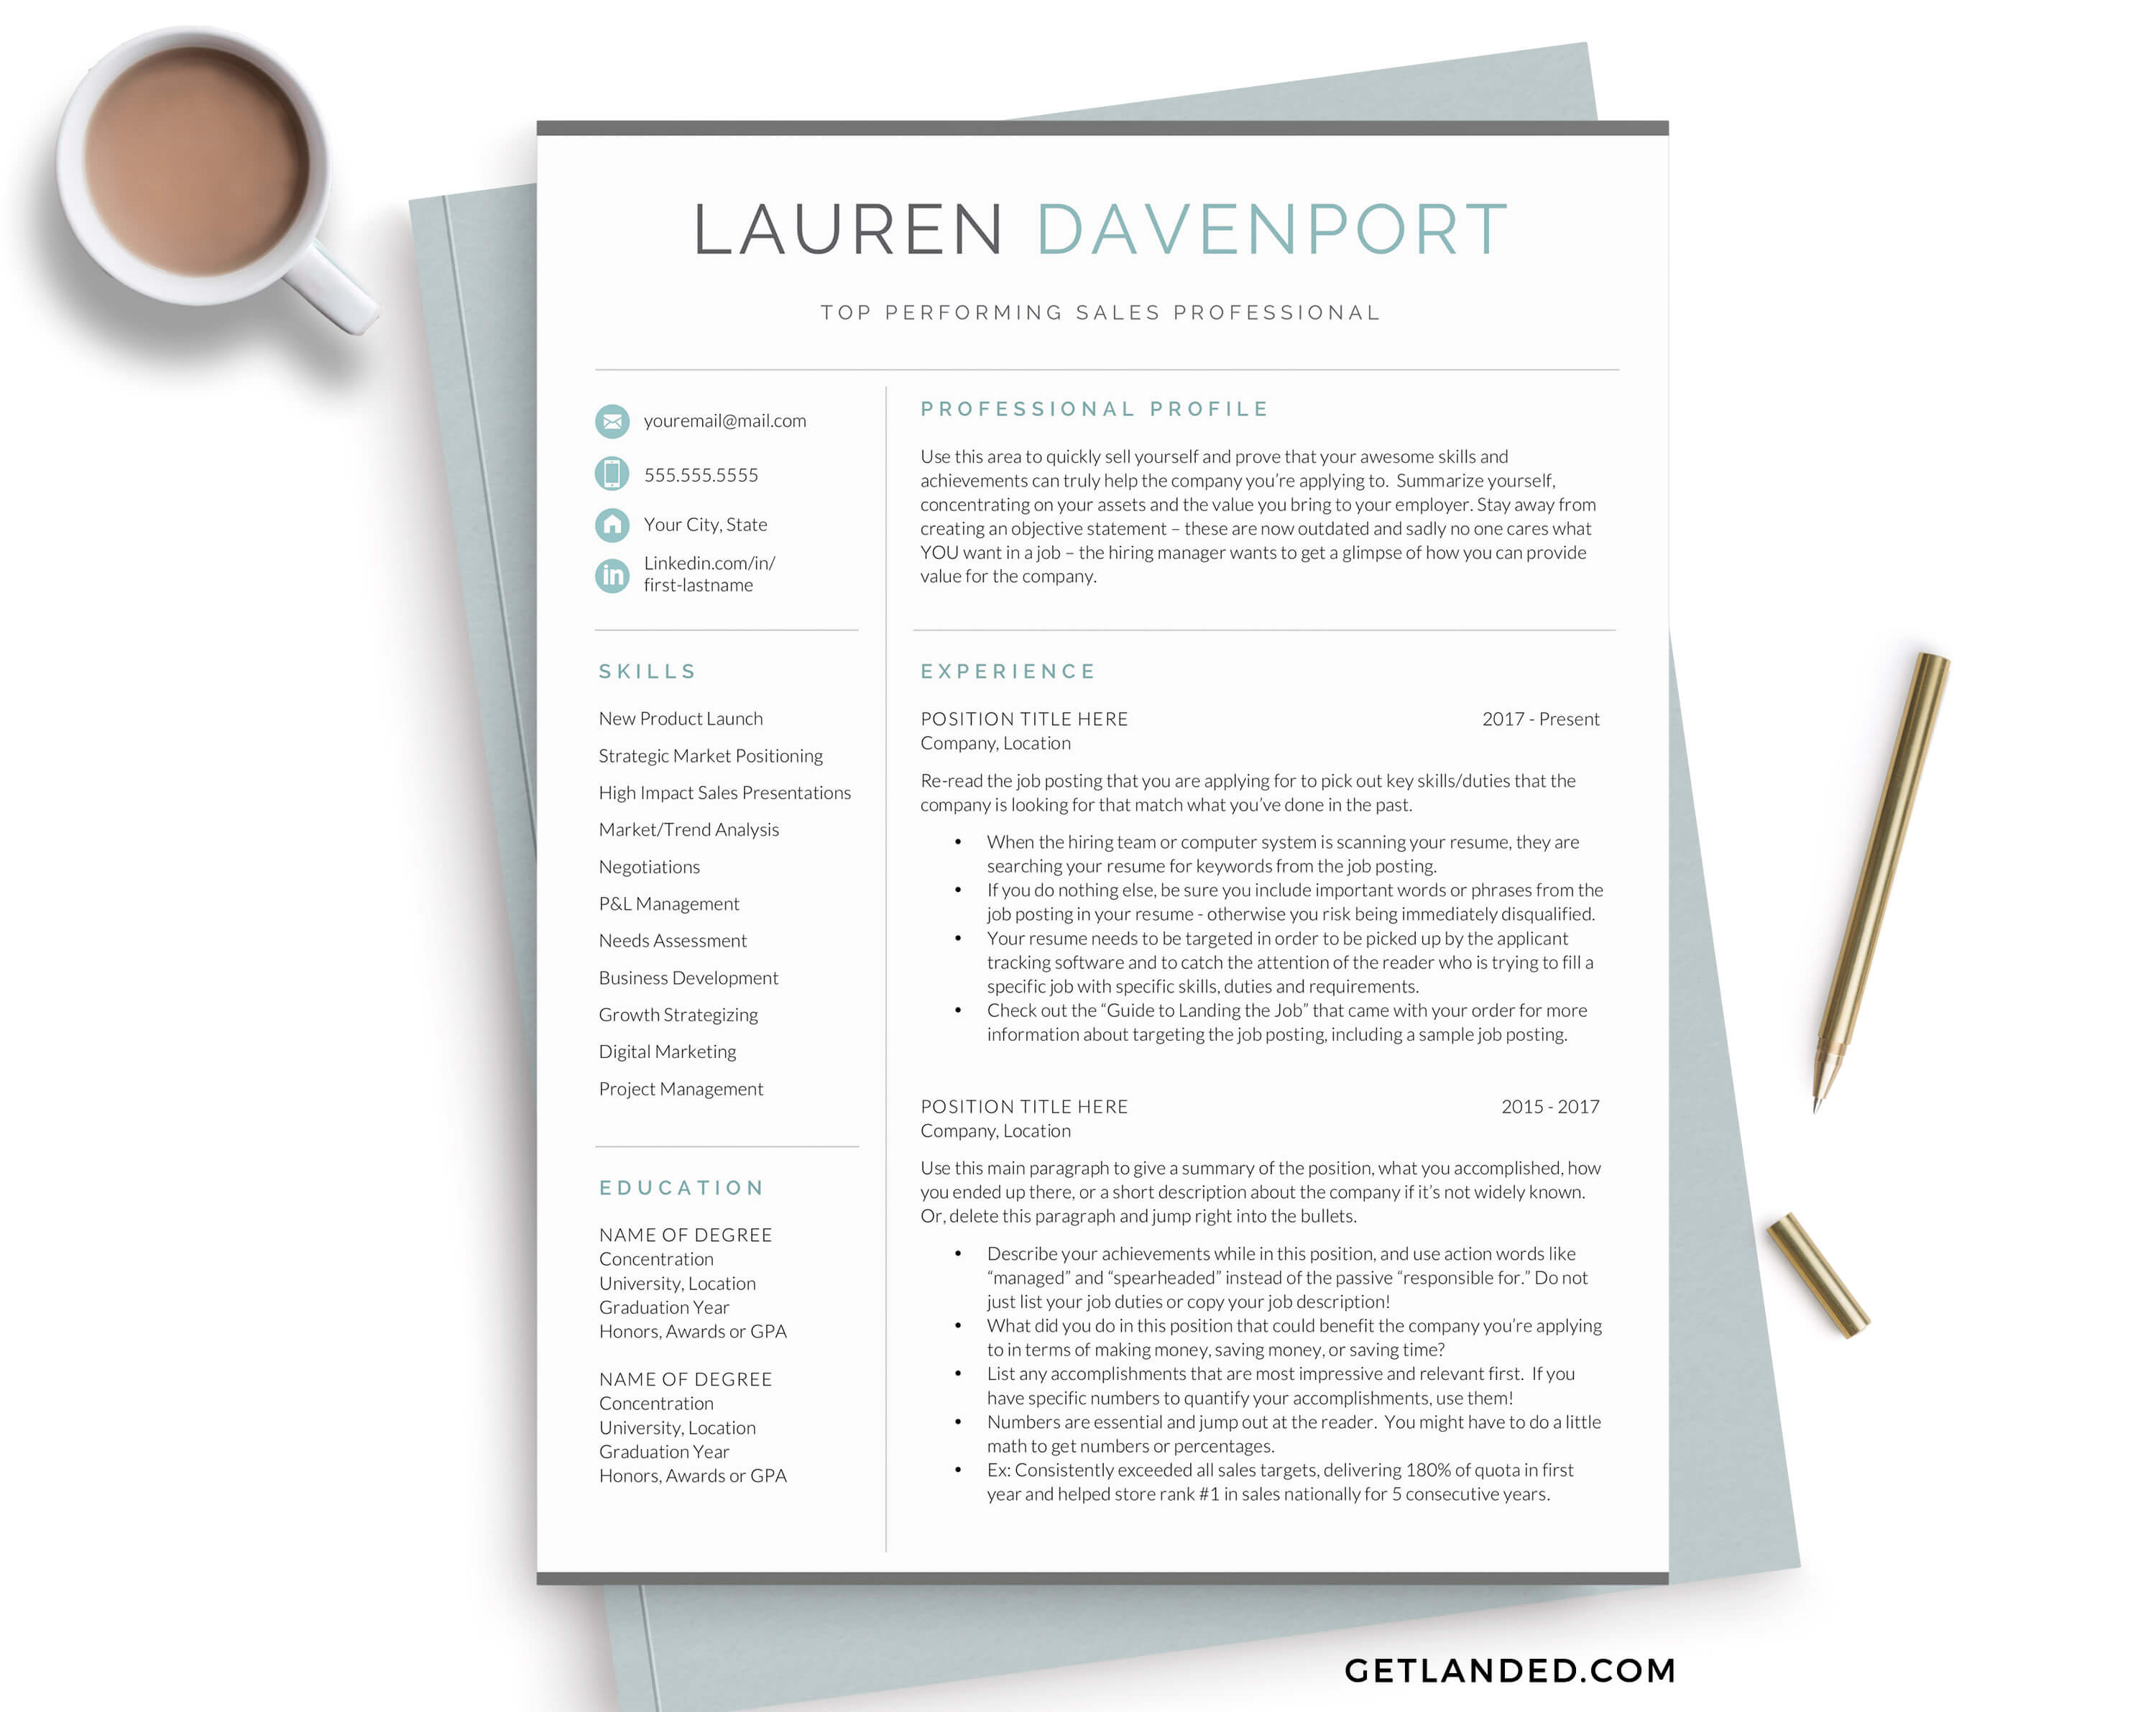 Lauren Davenport modern resume template for word and pages